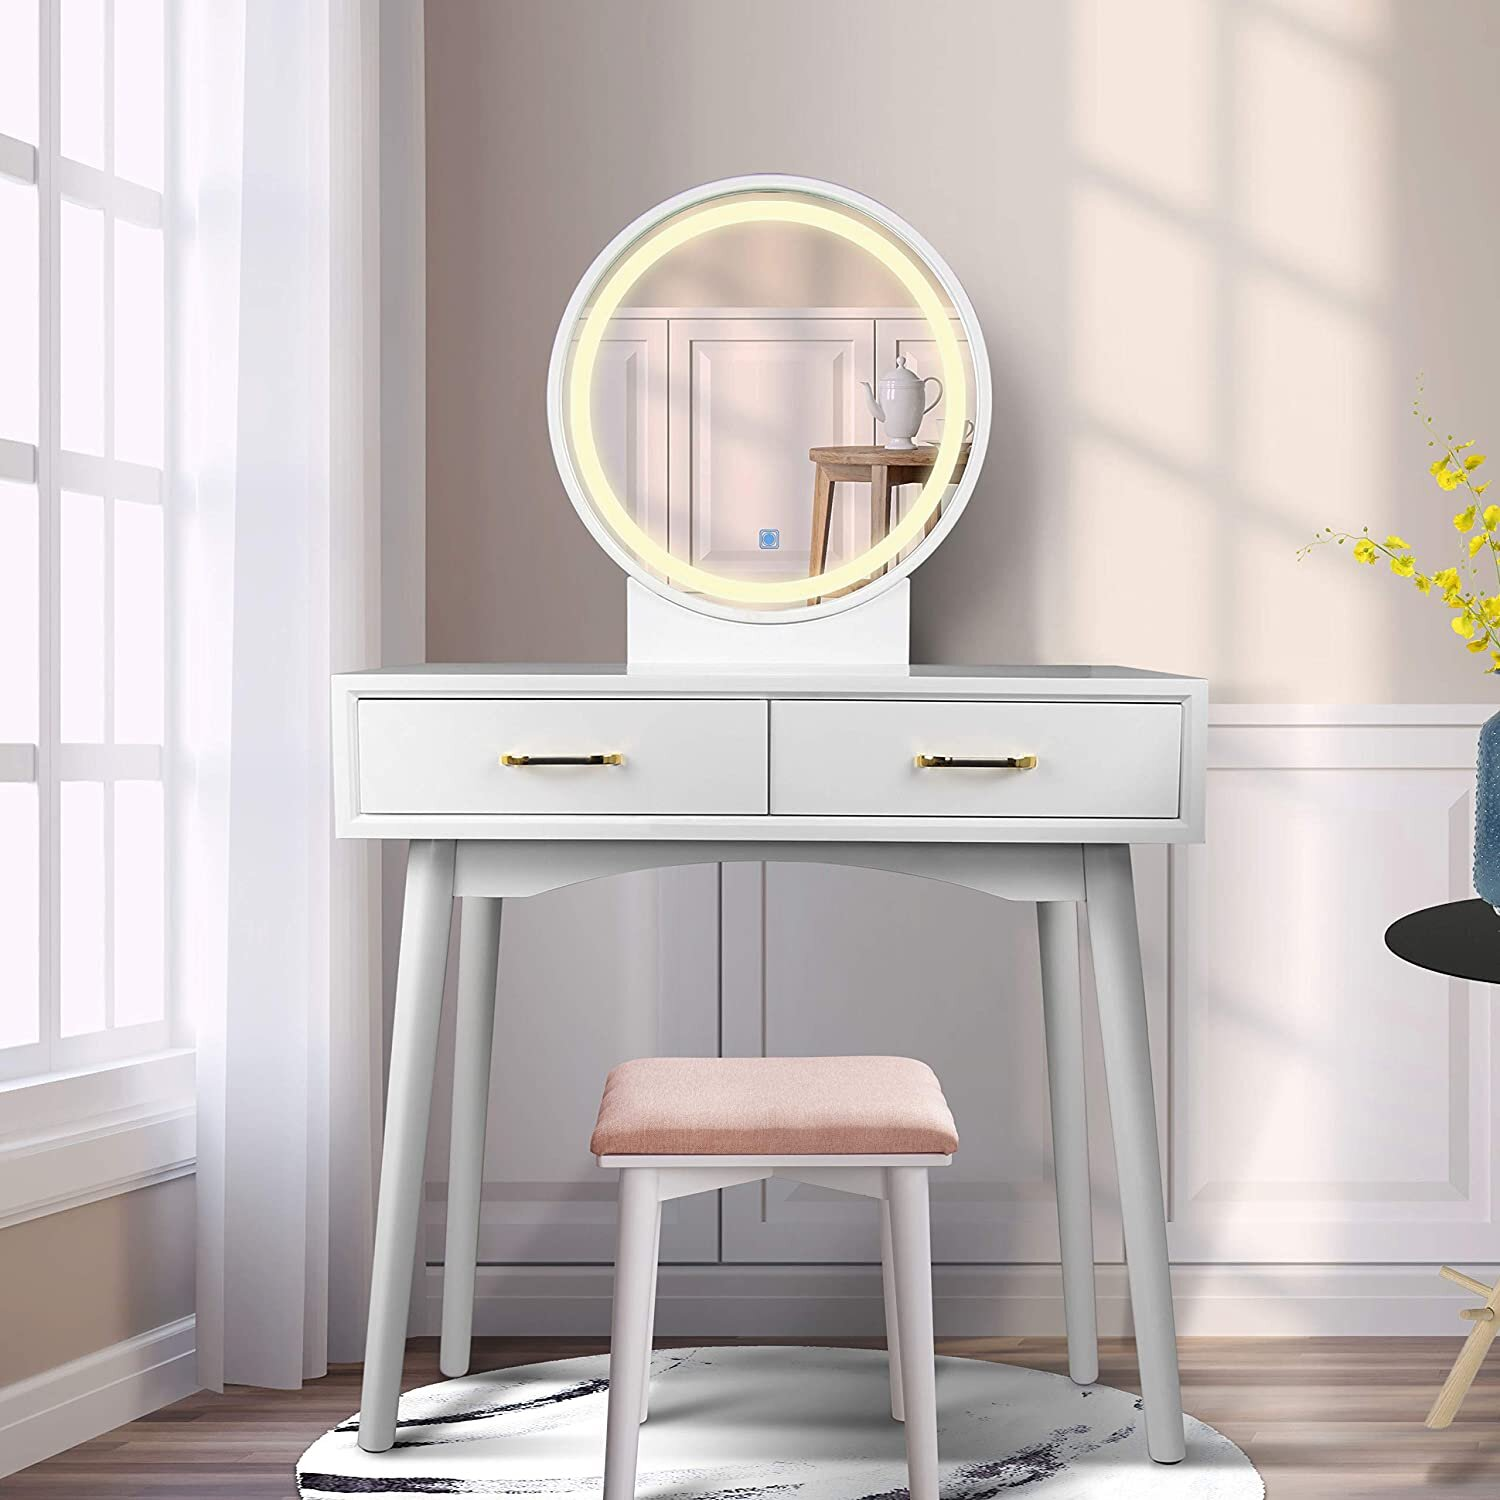 Dressing Table With Led Lights Mirror Stools Not Included White Vanity Makeup Table With Drawers For Bedroom Furniture Dressing Tables